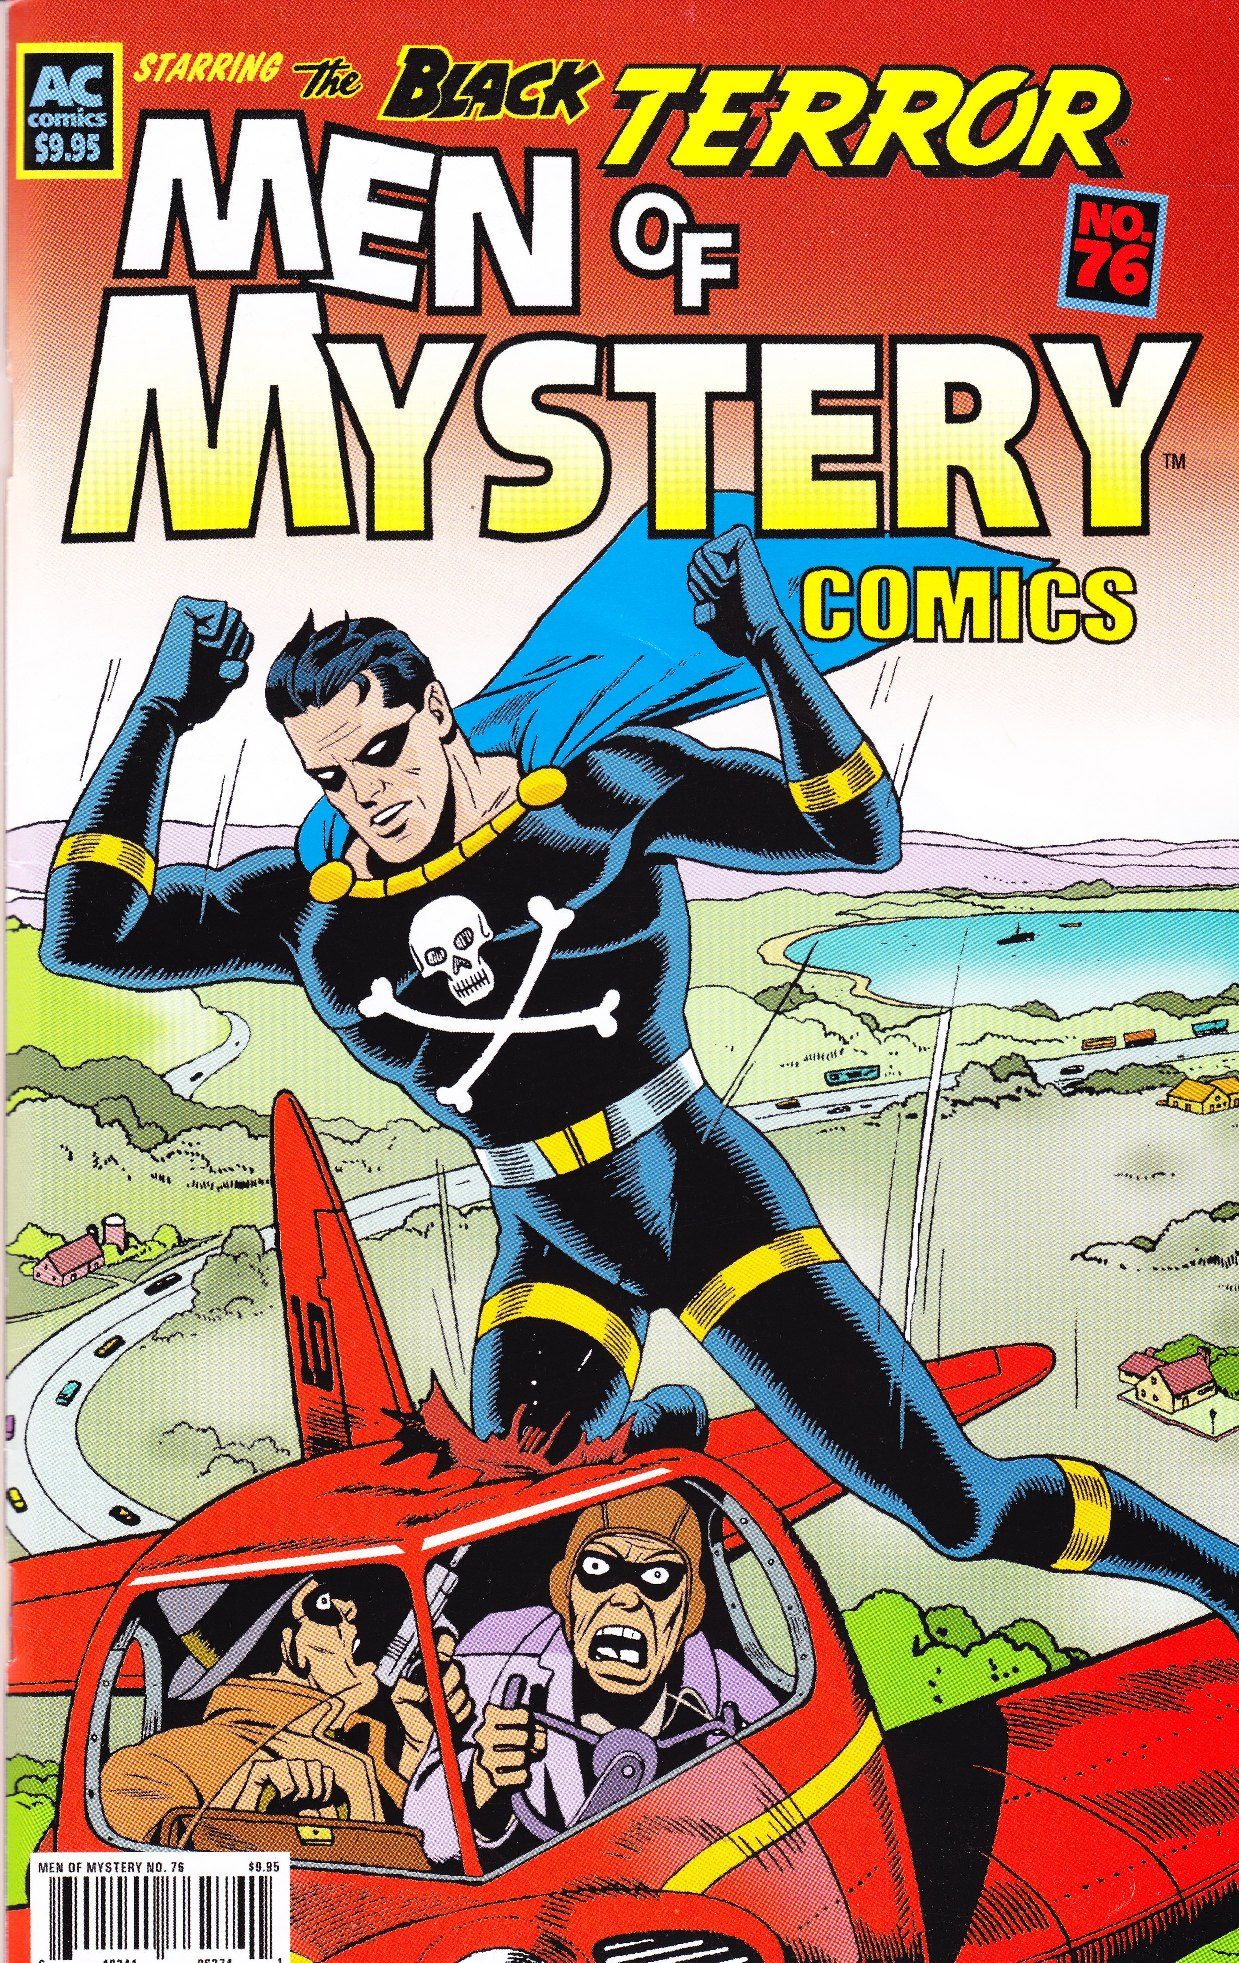 Read online Men of Mystery Comics comic -  Issue #76 - 1